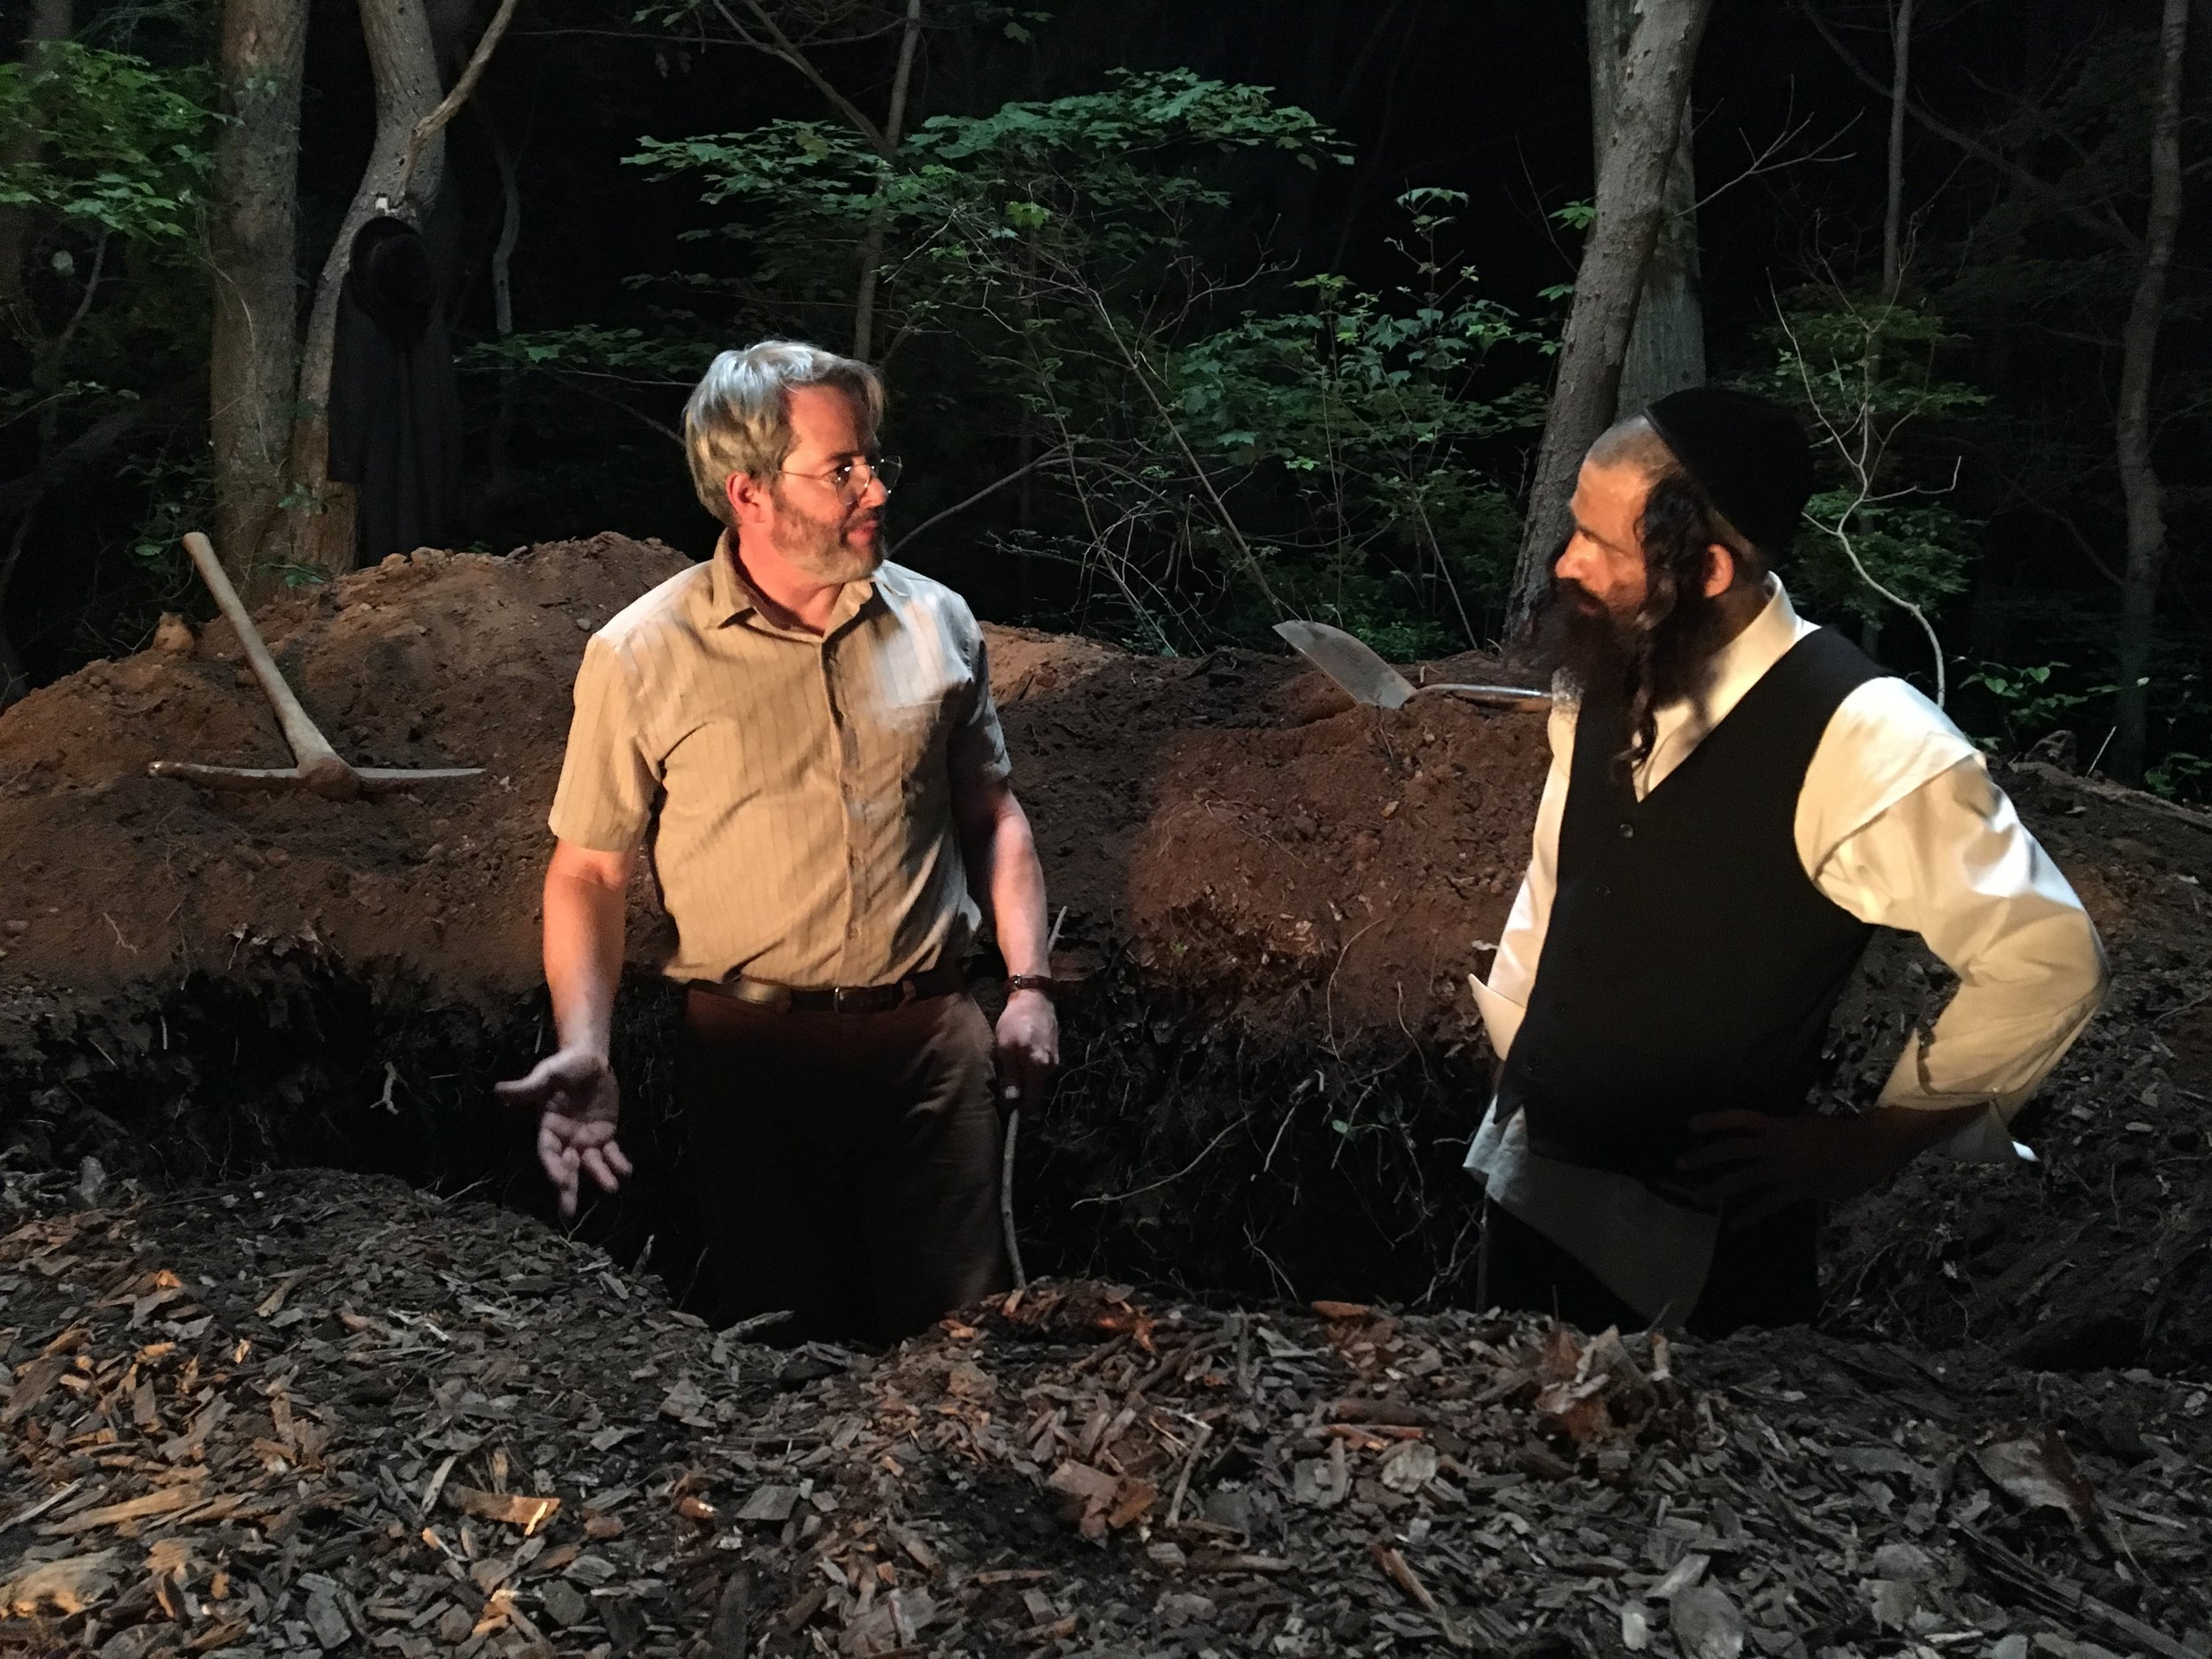 Albert (Matthew Broderick) and Shmuel (Géza Rohrïg) seek insights into human decomposition in To Dust